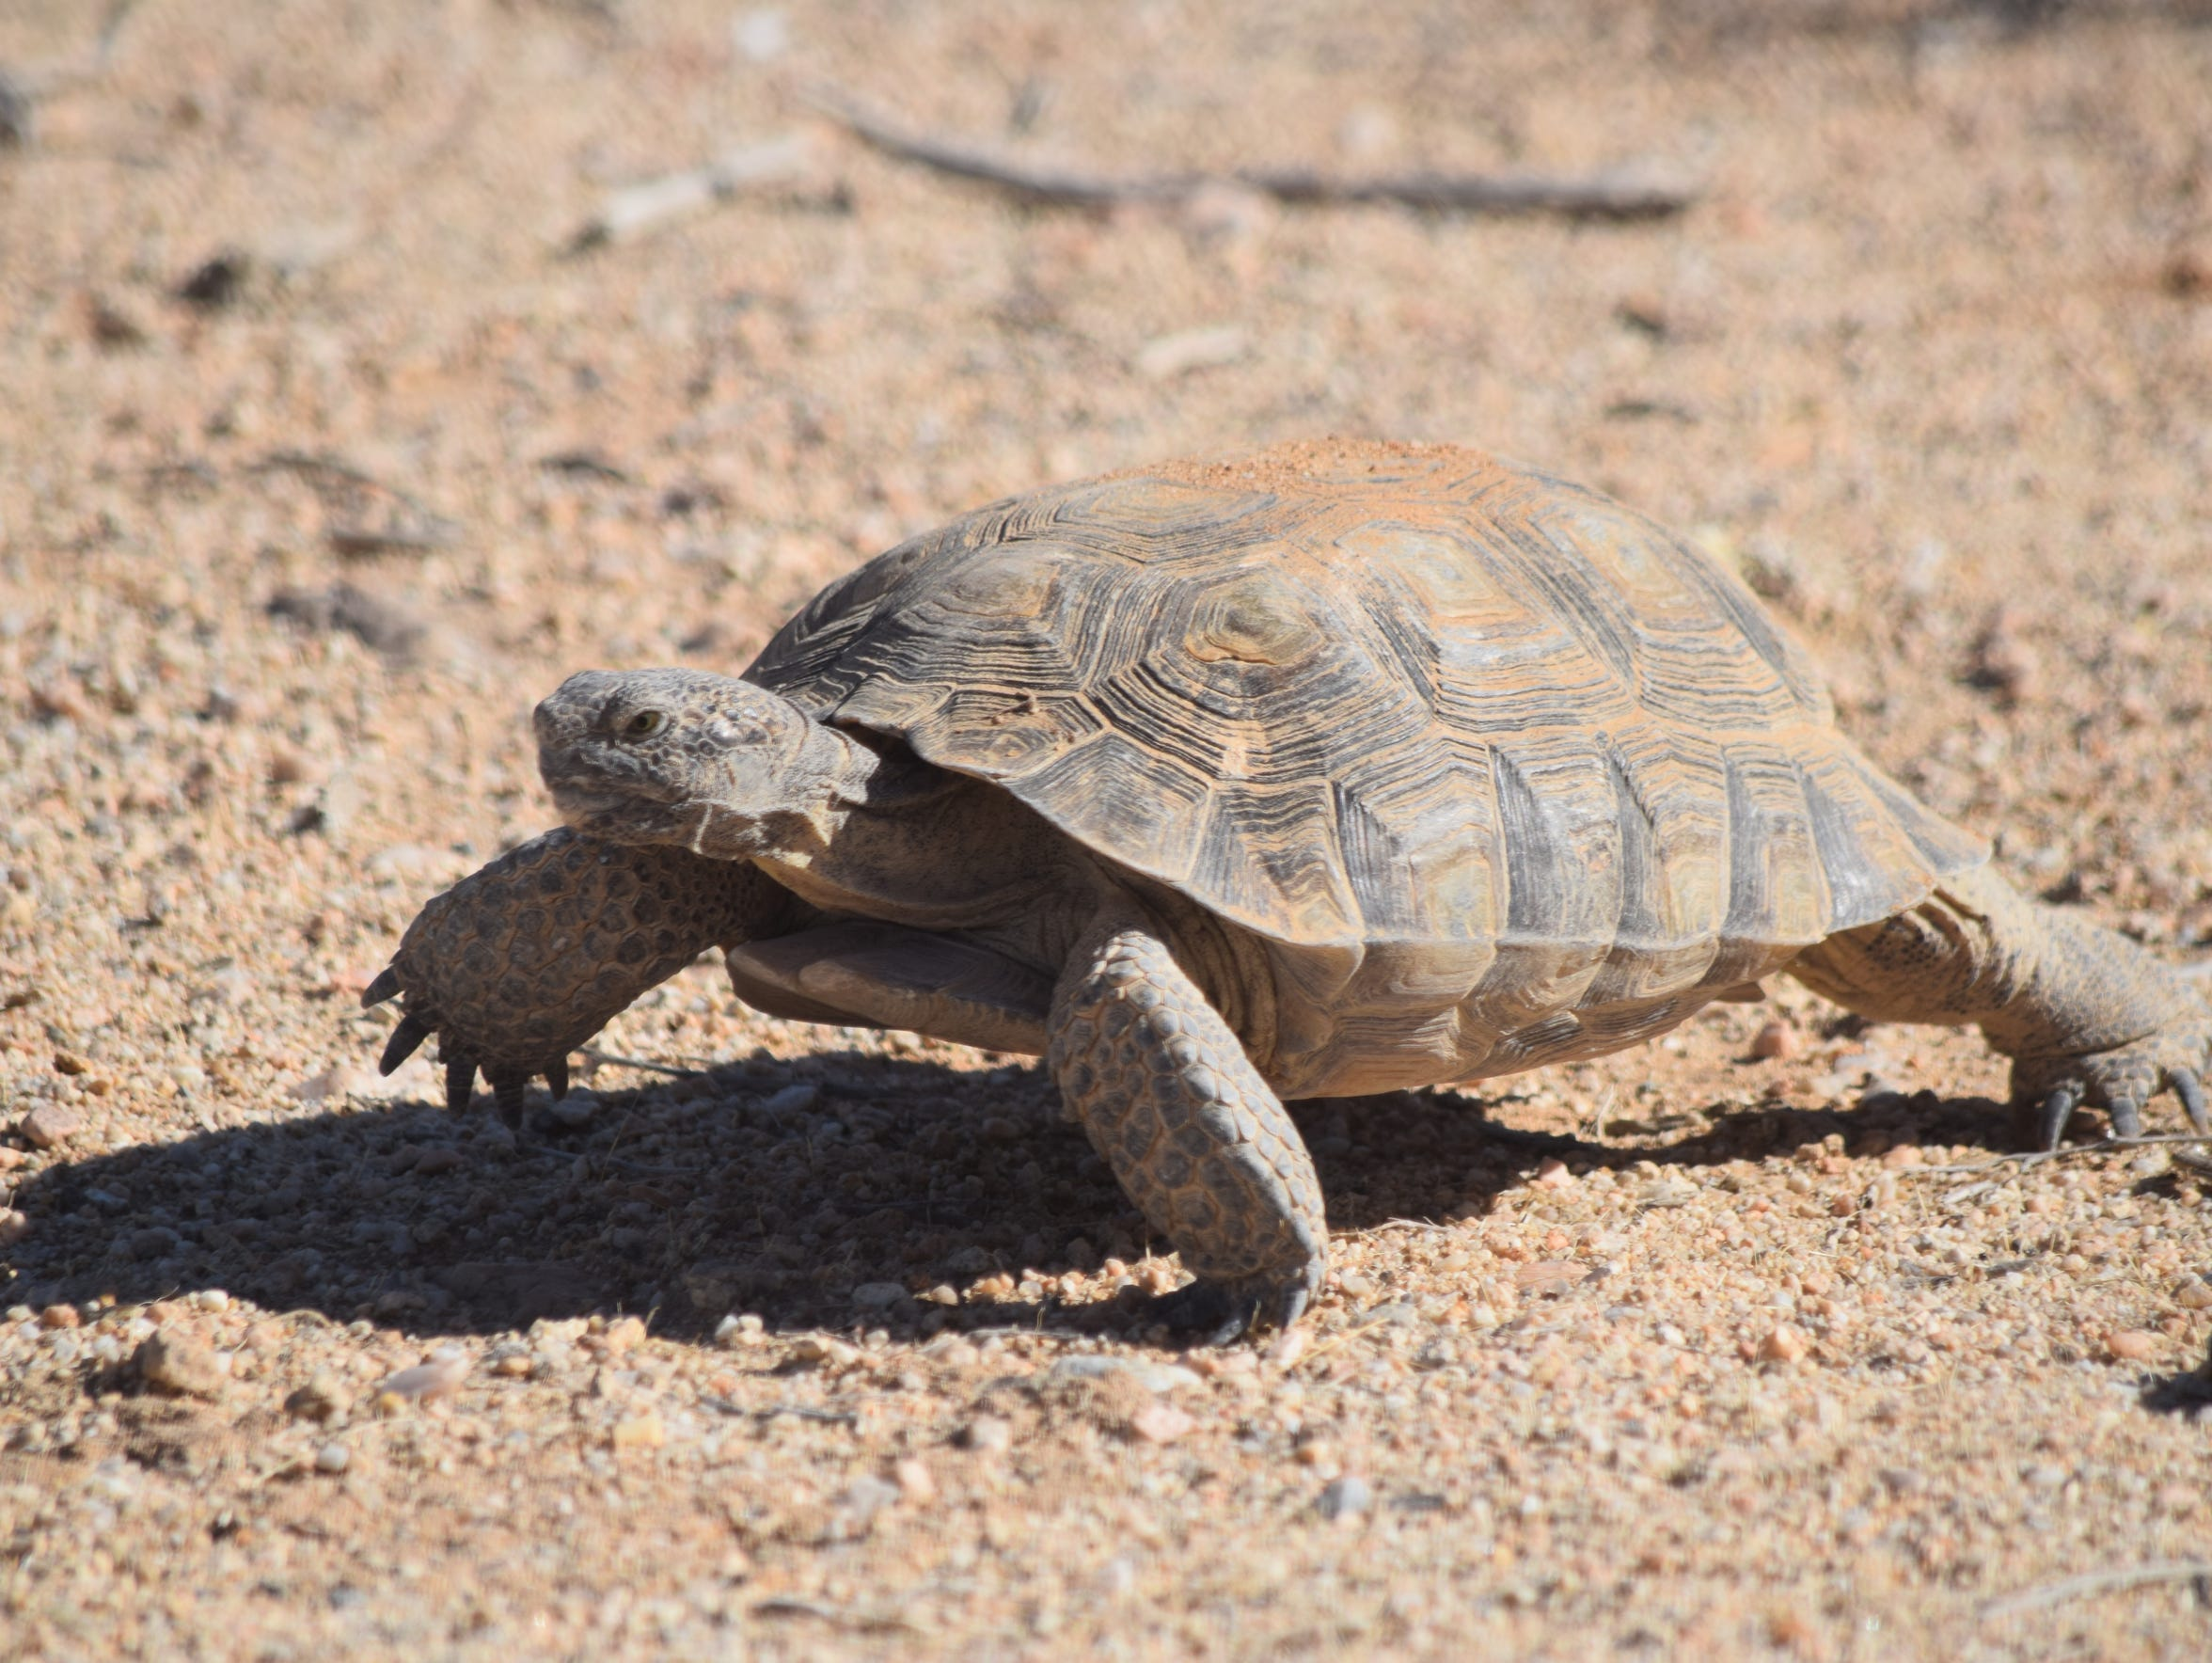 This is Thelma, a desert tortoise that resides at the Tortoise Research and Captive Rearing Site at the Marine Corps Air Ground Combat Center in Twentynine Palms, California, as seen on Sept. 30, 2015.